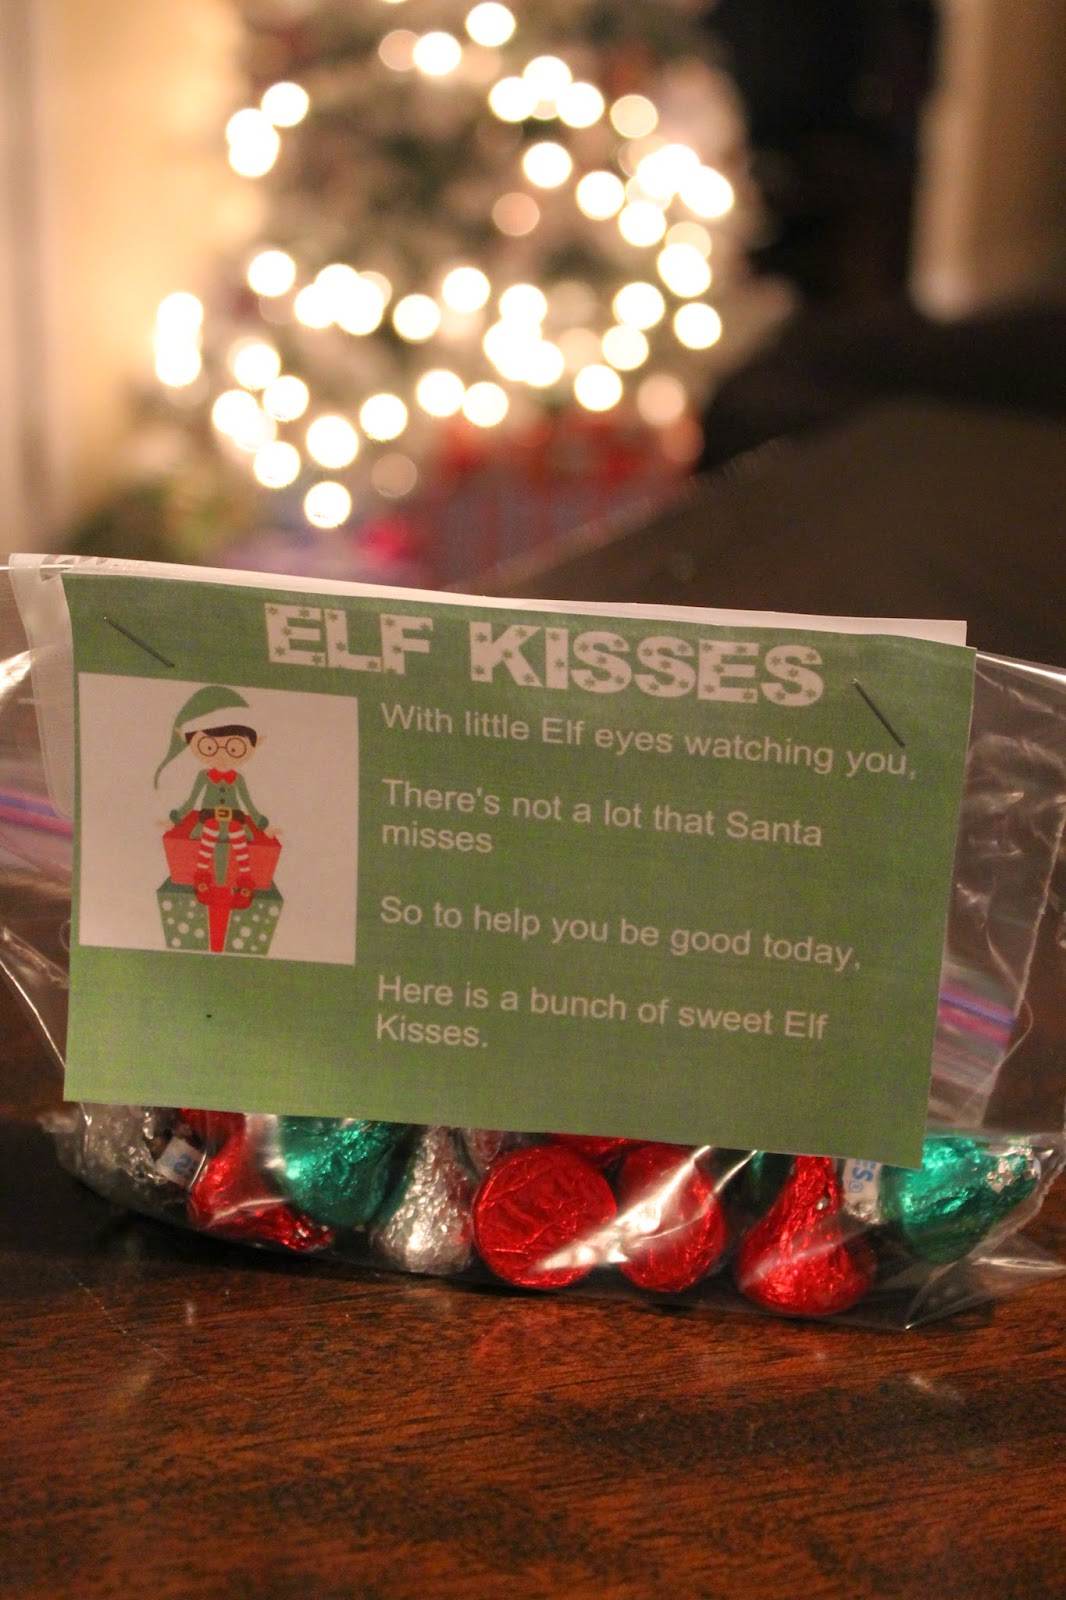 graphic about Elf Kisses Printable referred to as Elf Kisses Cost-free Printable Our Familys Each day Lifestyle